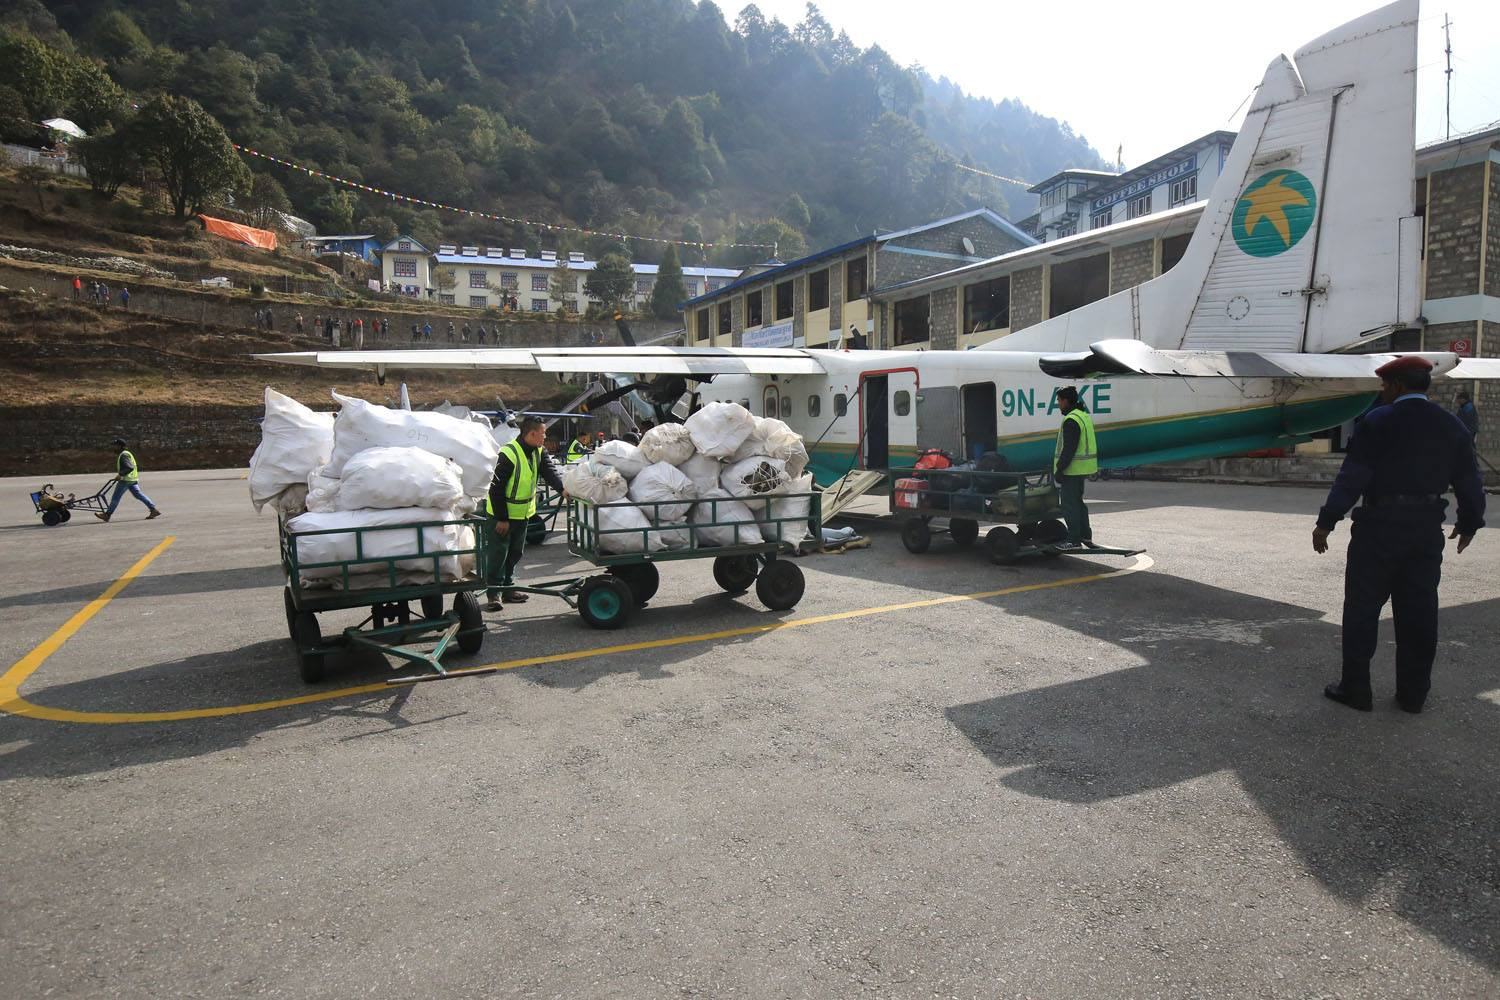 yeti airlines everest clean-up campaign garbage